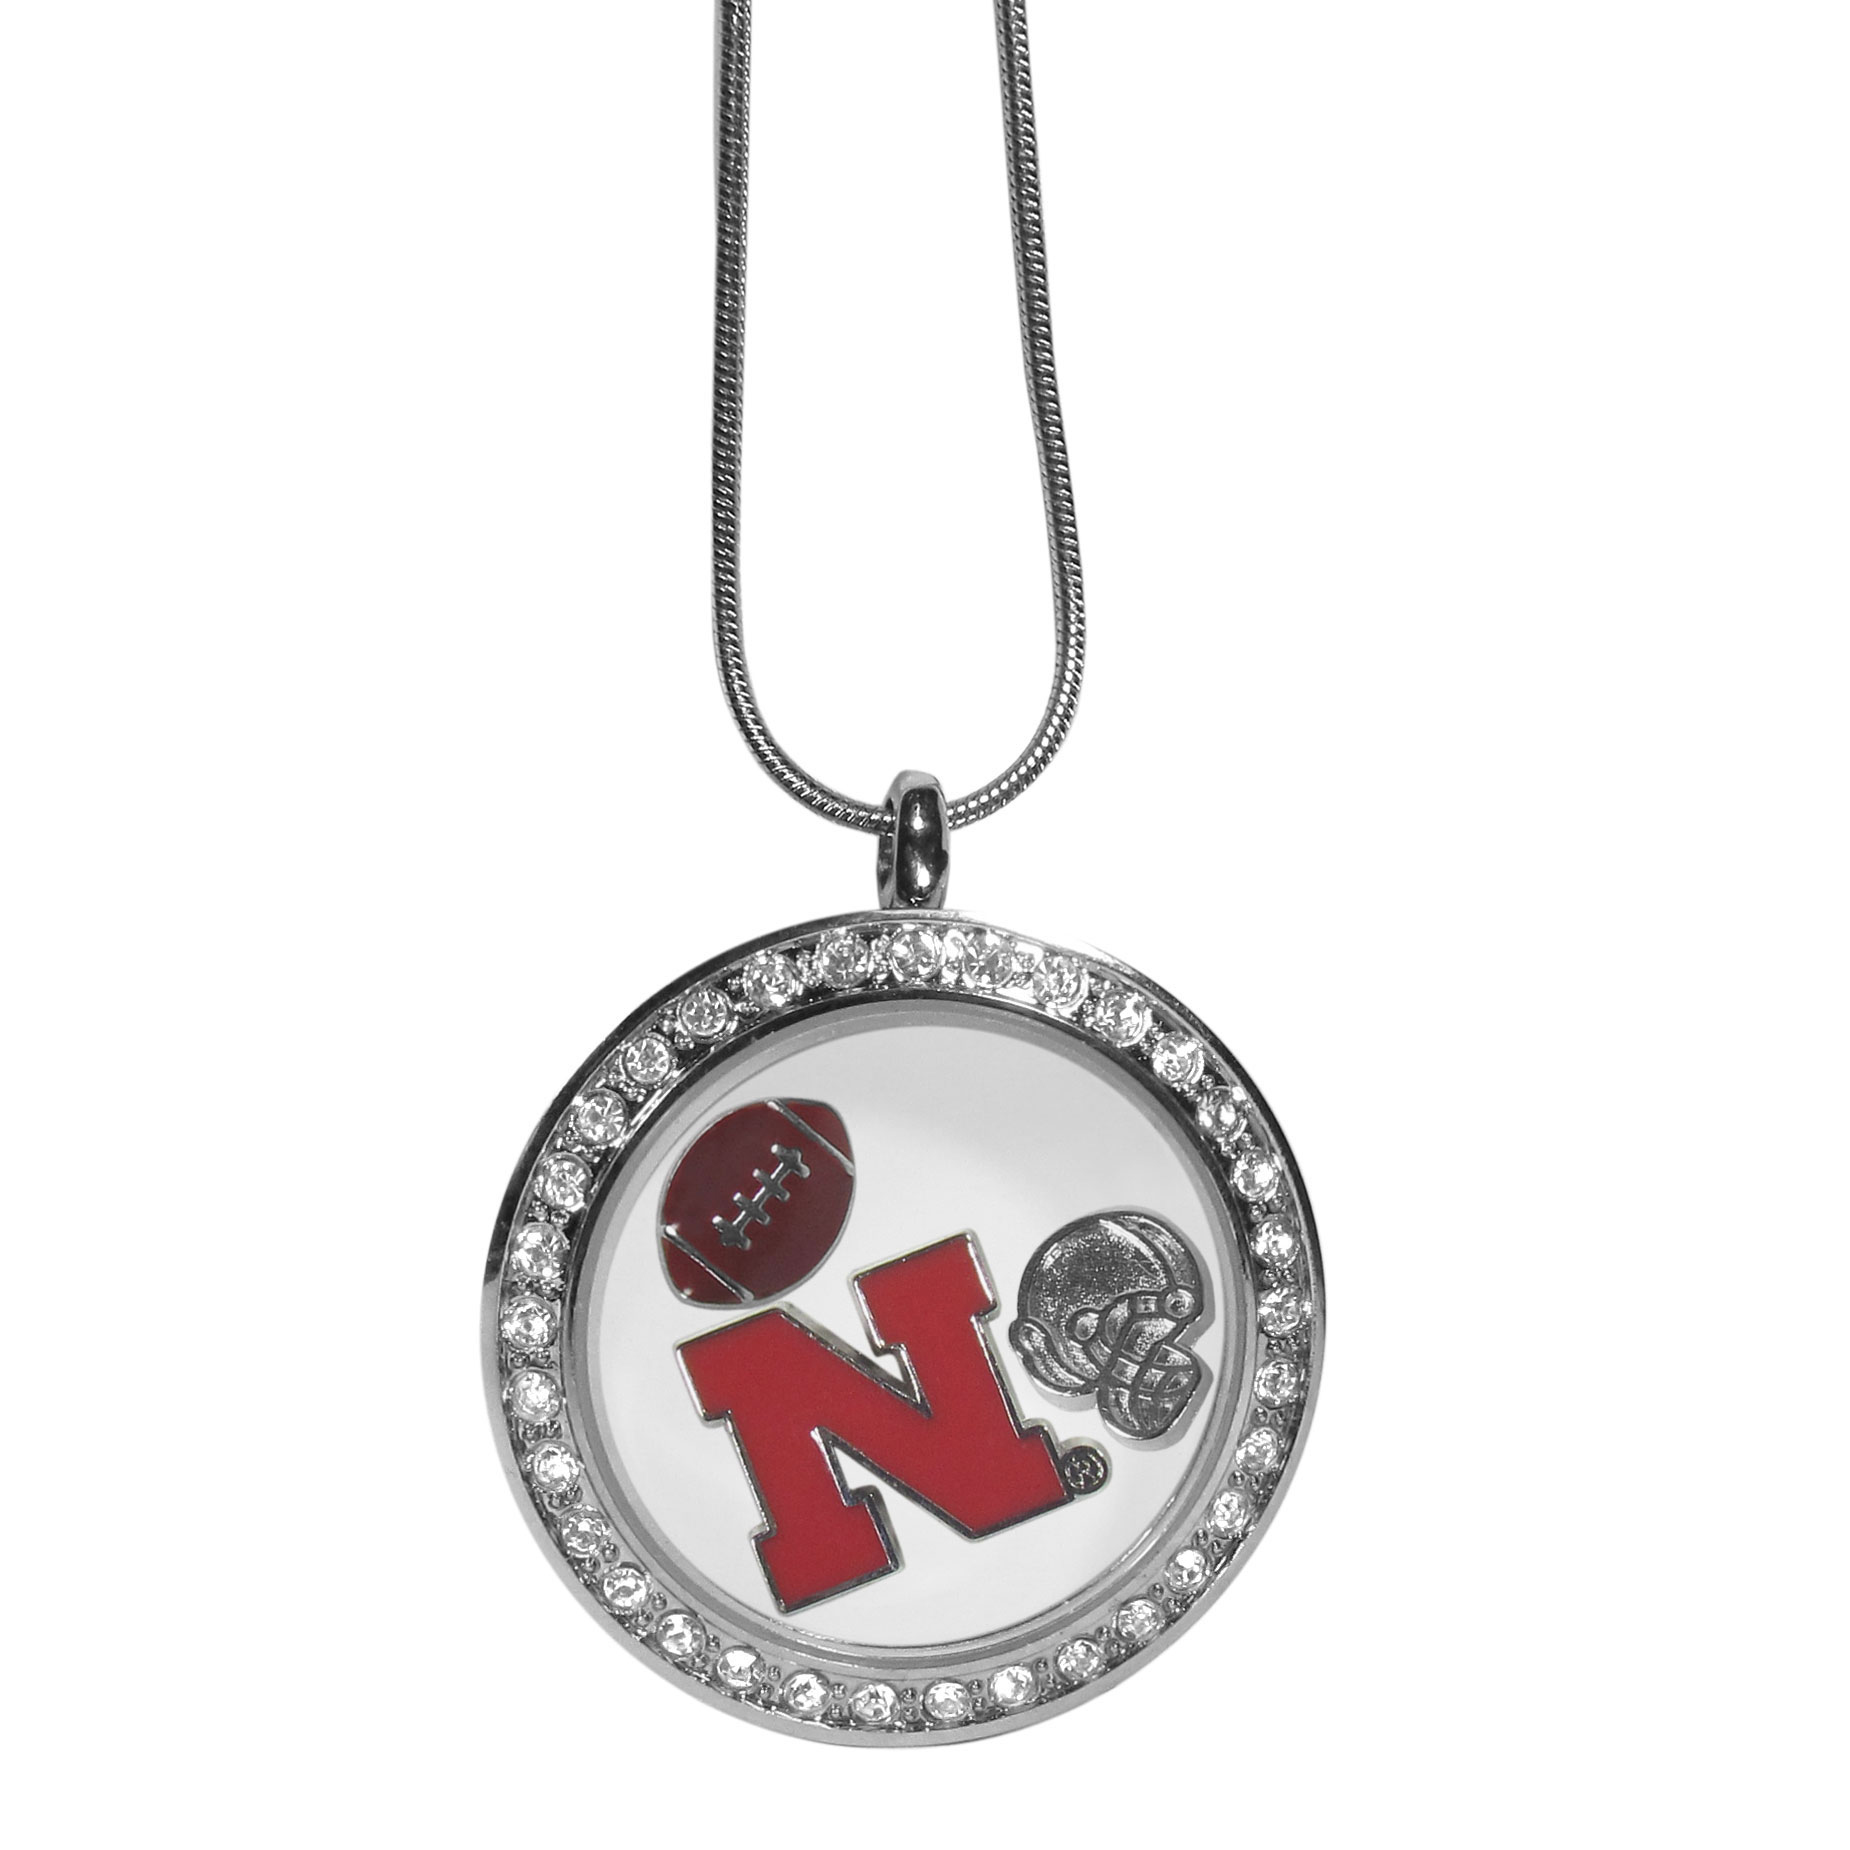 Nebraska Cornhuskers Locket Necklace - We have taken the classic floating charm locket and combined with licensed sports charms to create a must have fan necklace. The necklace comes with 3 charms; 1 Nebraska Cornhuskers charm, one football charm and one helmet charm. The charms float in a beautiful locket that has a strong magnetic closure with a rhinestone border. The locket comes on an 18 inch snake chain with 2 inch extender.